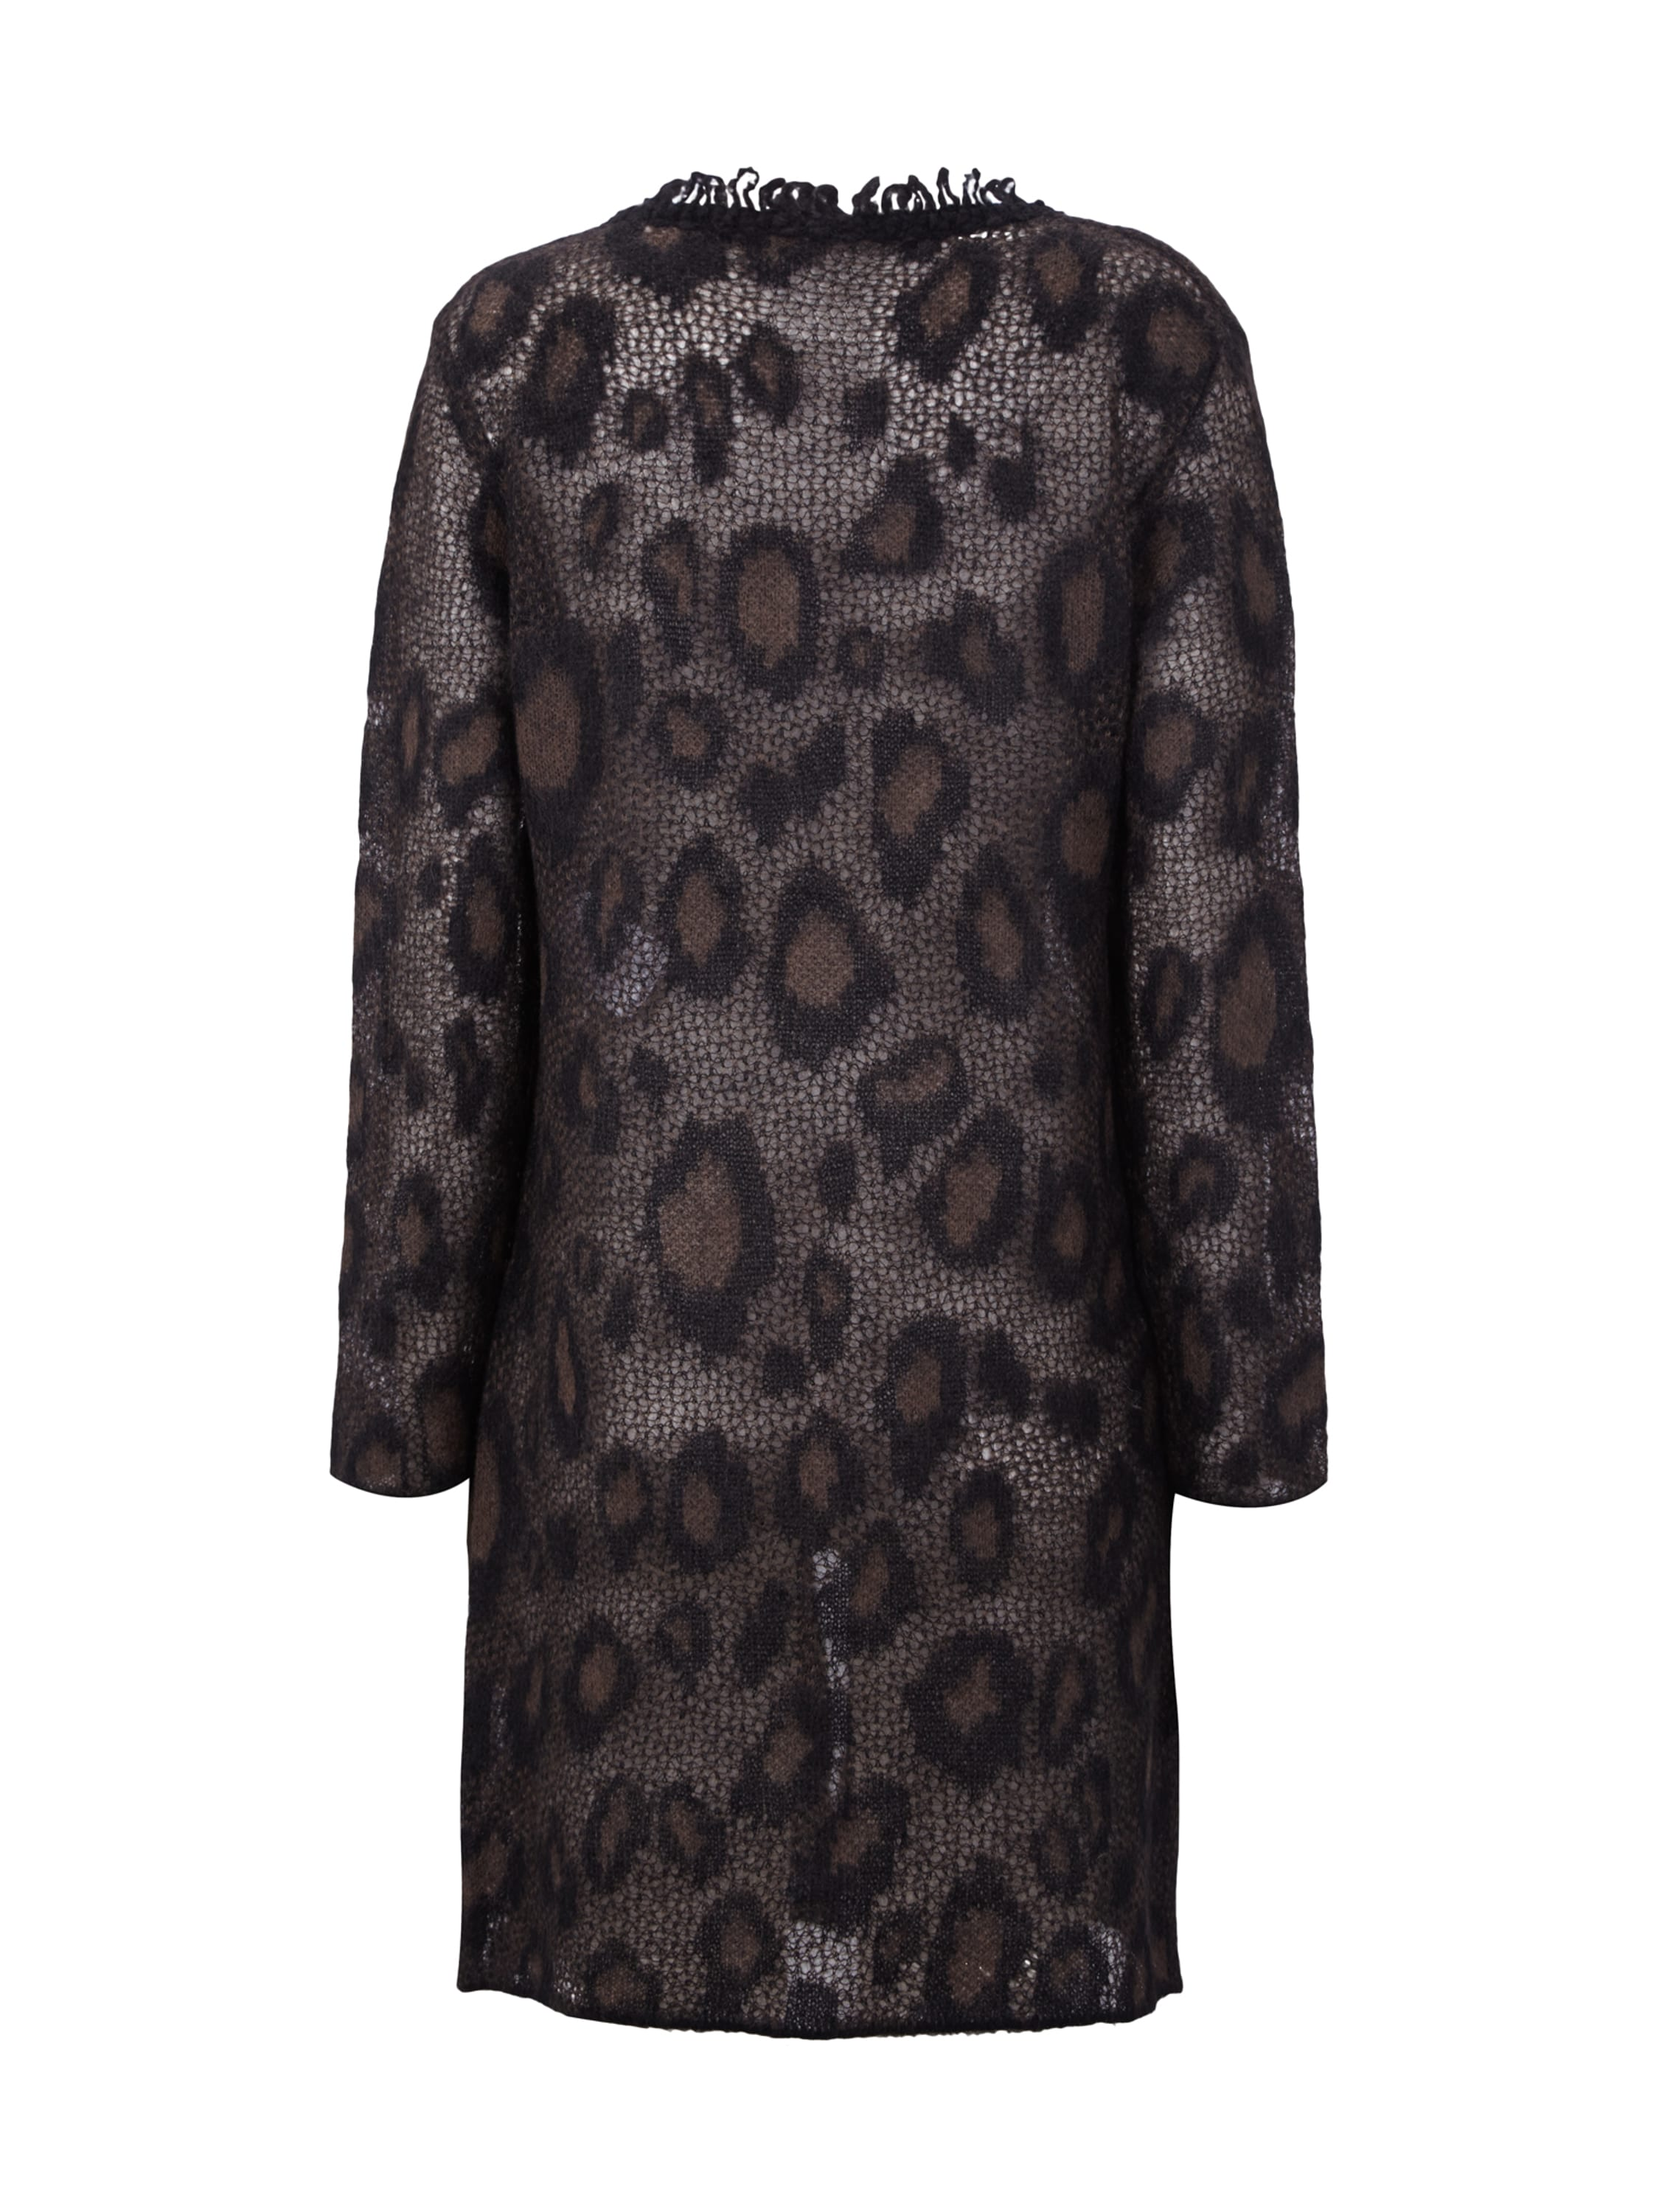 marc cain collections long cardigan mit leopardenmuster in braun online kaufen 9283381 p c. Black Bedroom Furniture Sets. Home Design Ideas